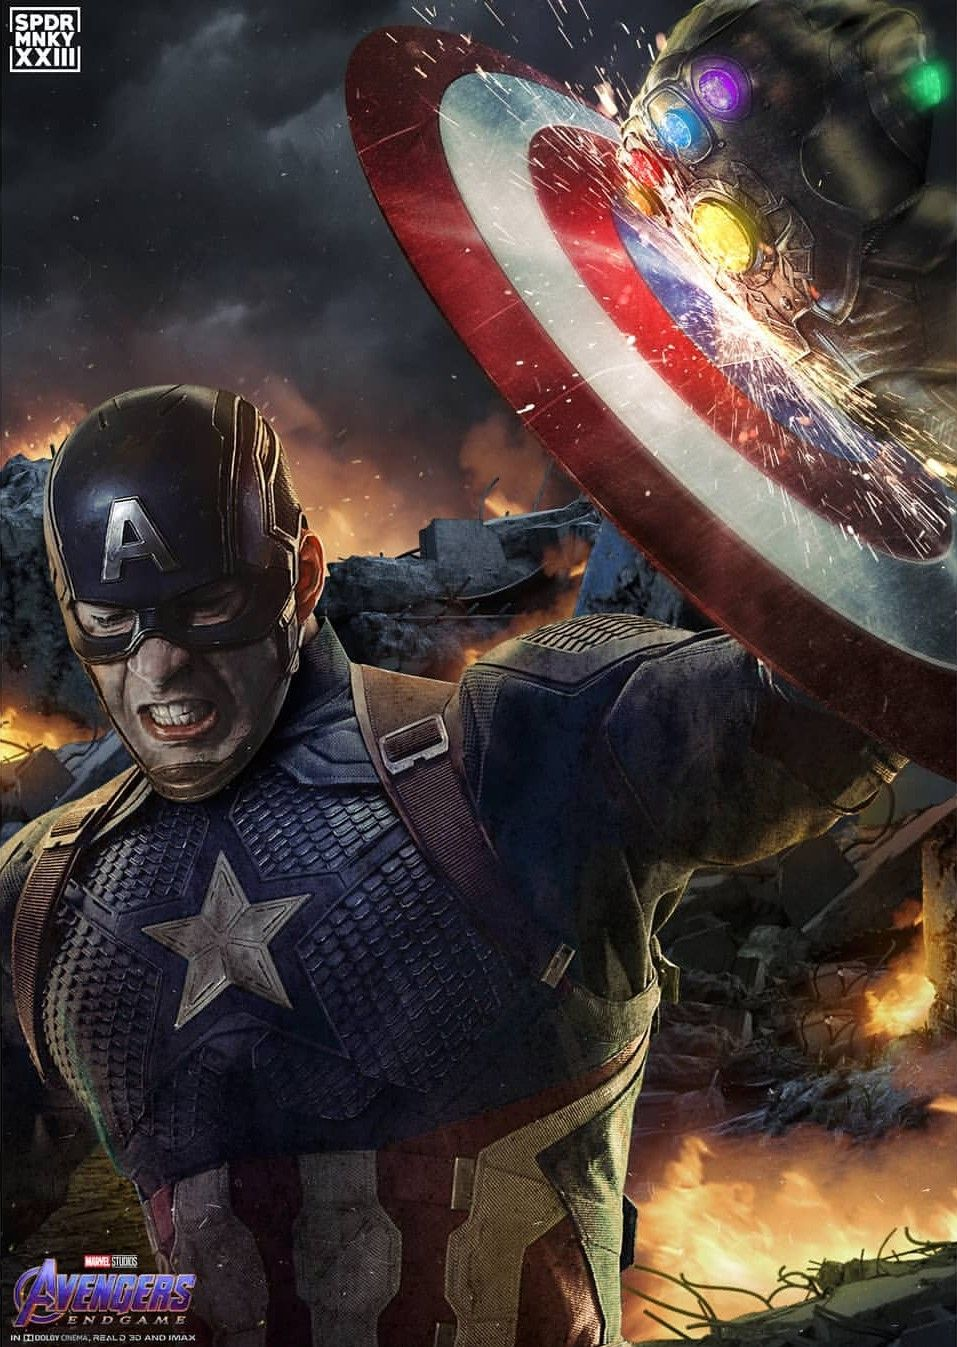 Captain America Vs Thanos By Sprmnky With Images Marvel